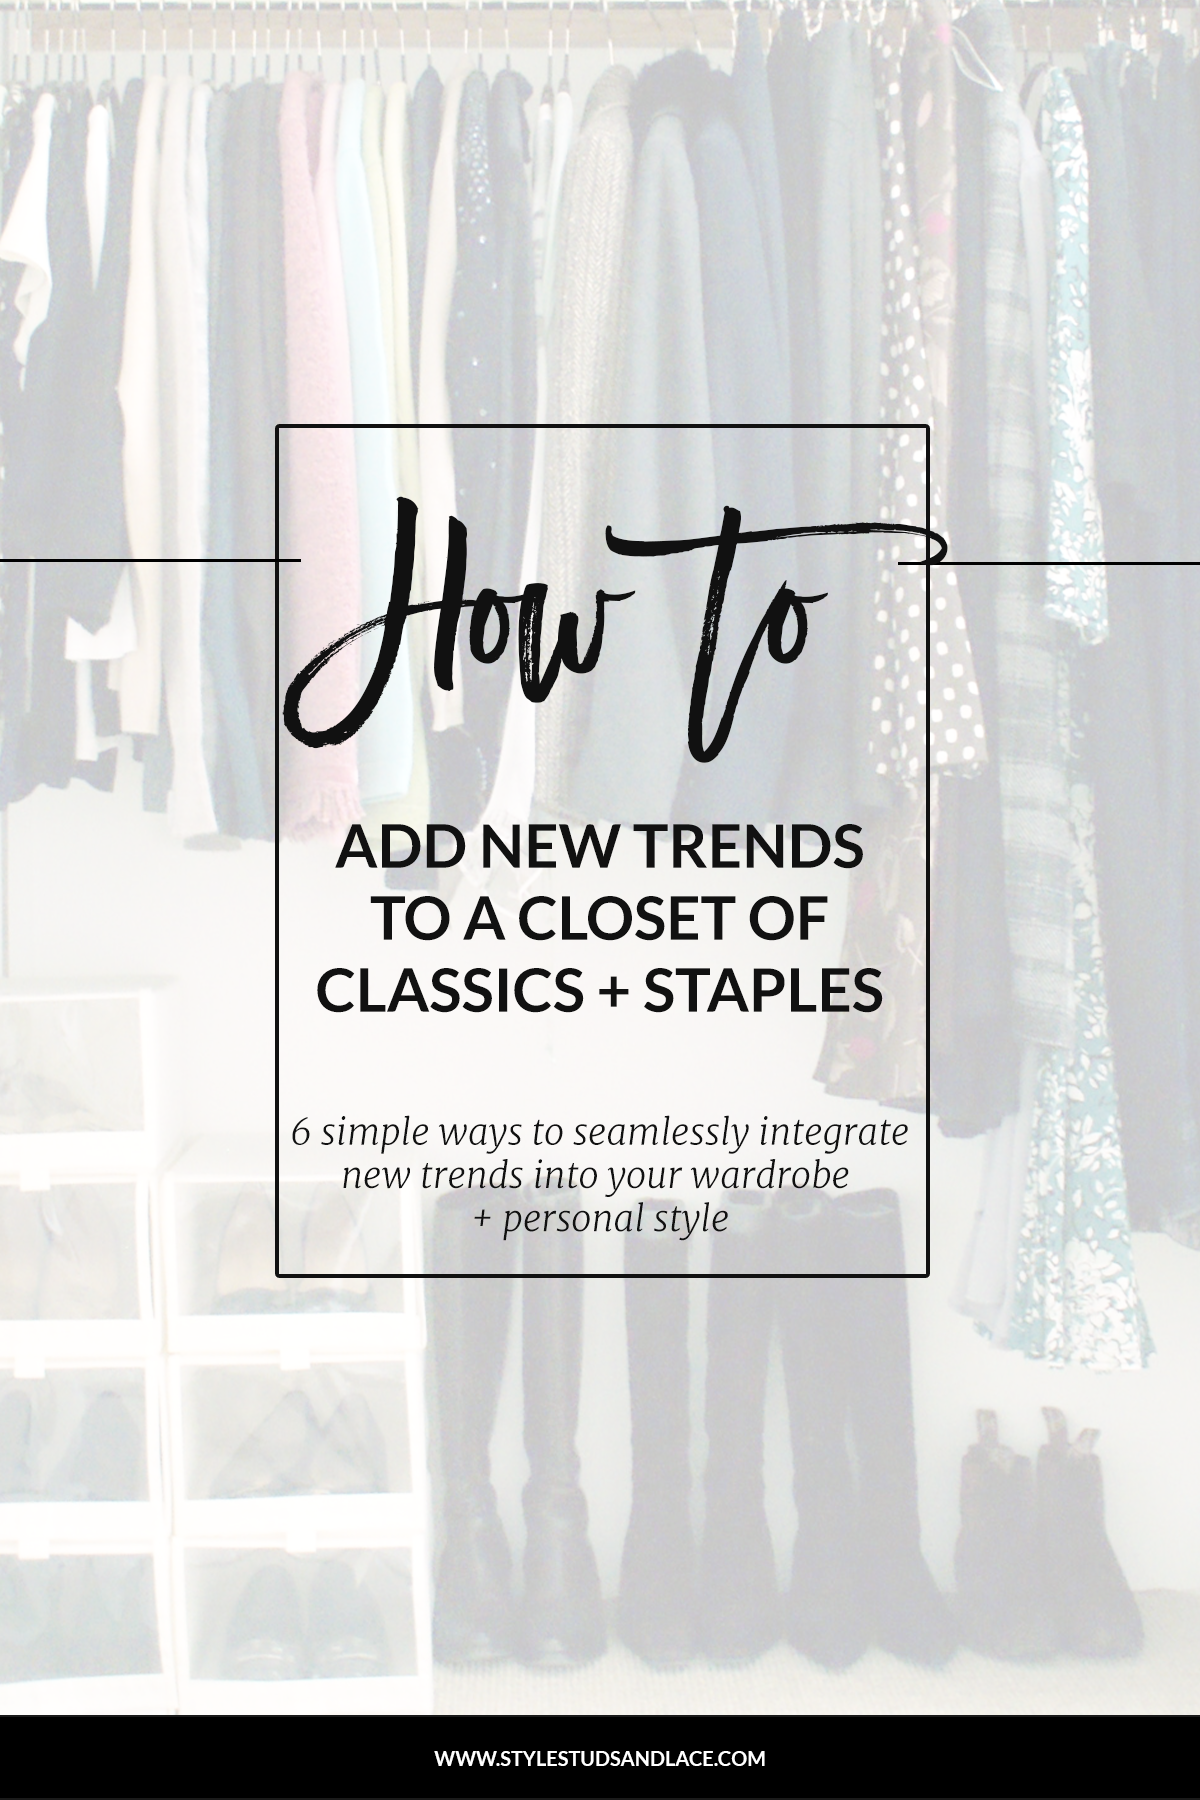 6 simple ways to integrate new trends into your wardrobe and personal style | How to, organize, new trends, style, classic, ideas, clothes, in fashion, outfits, closet, women, inspiration, tips, advice, simple, makeover, casual, adapt, trends, develop, grow, hack, tips and tricks, chic, effortless, stylish